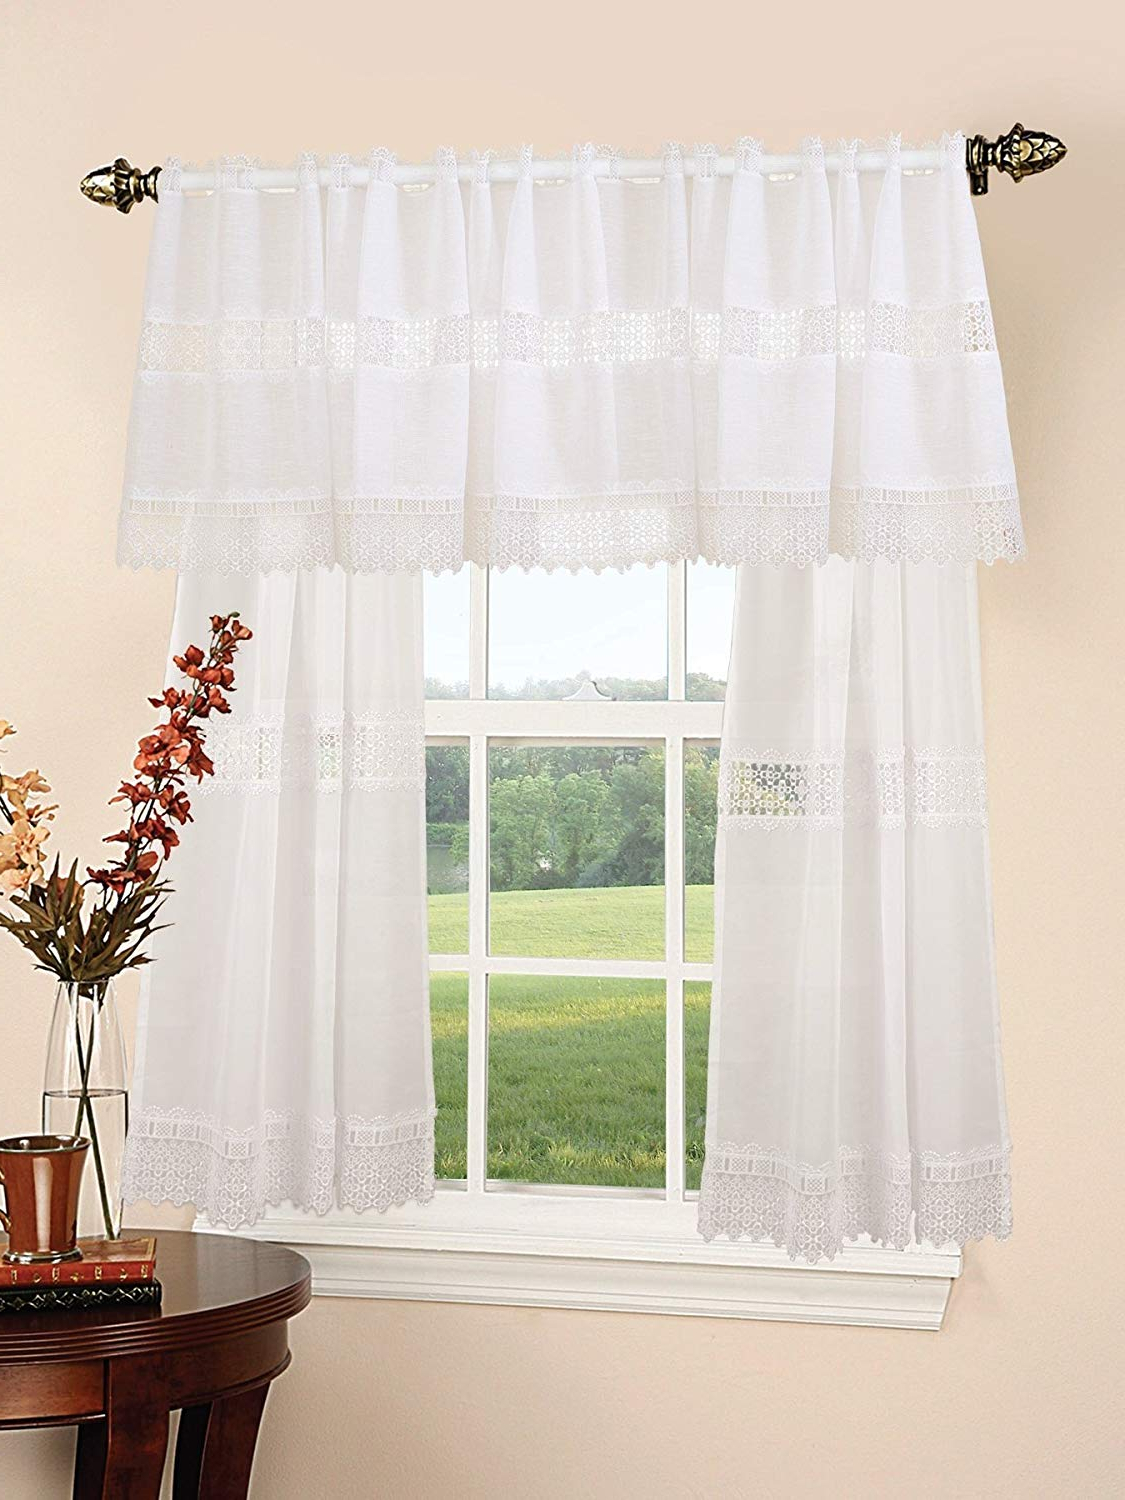 Spring Daisy Tiered Curtain 3 Piece Sets With Regard To 2020 Violet Linen Treasure Lace Design Sheer 3 Piece Kitchen Curtain Set, White (View 18 of 20)